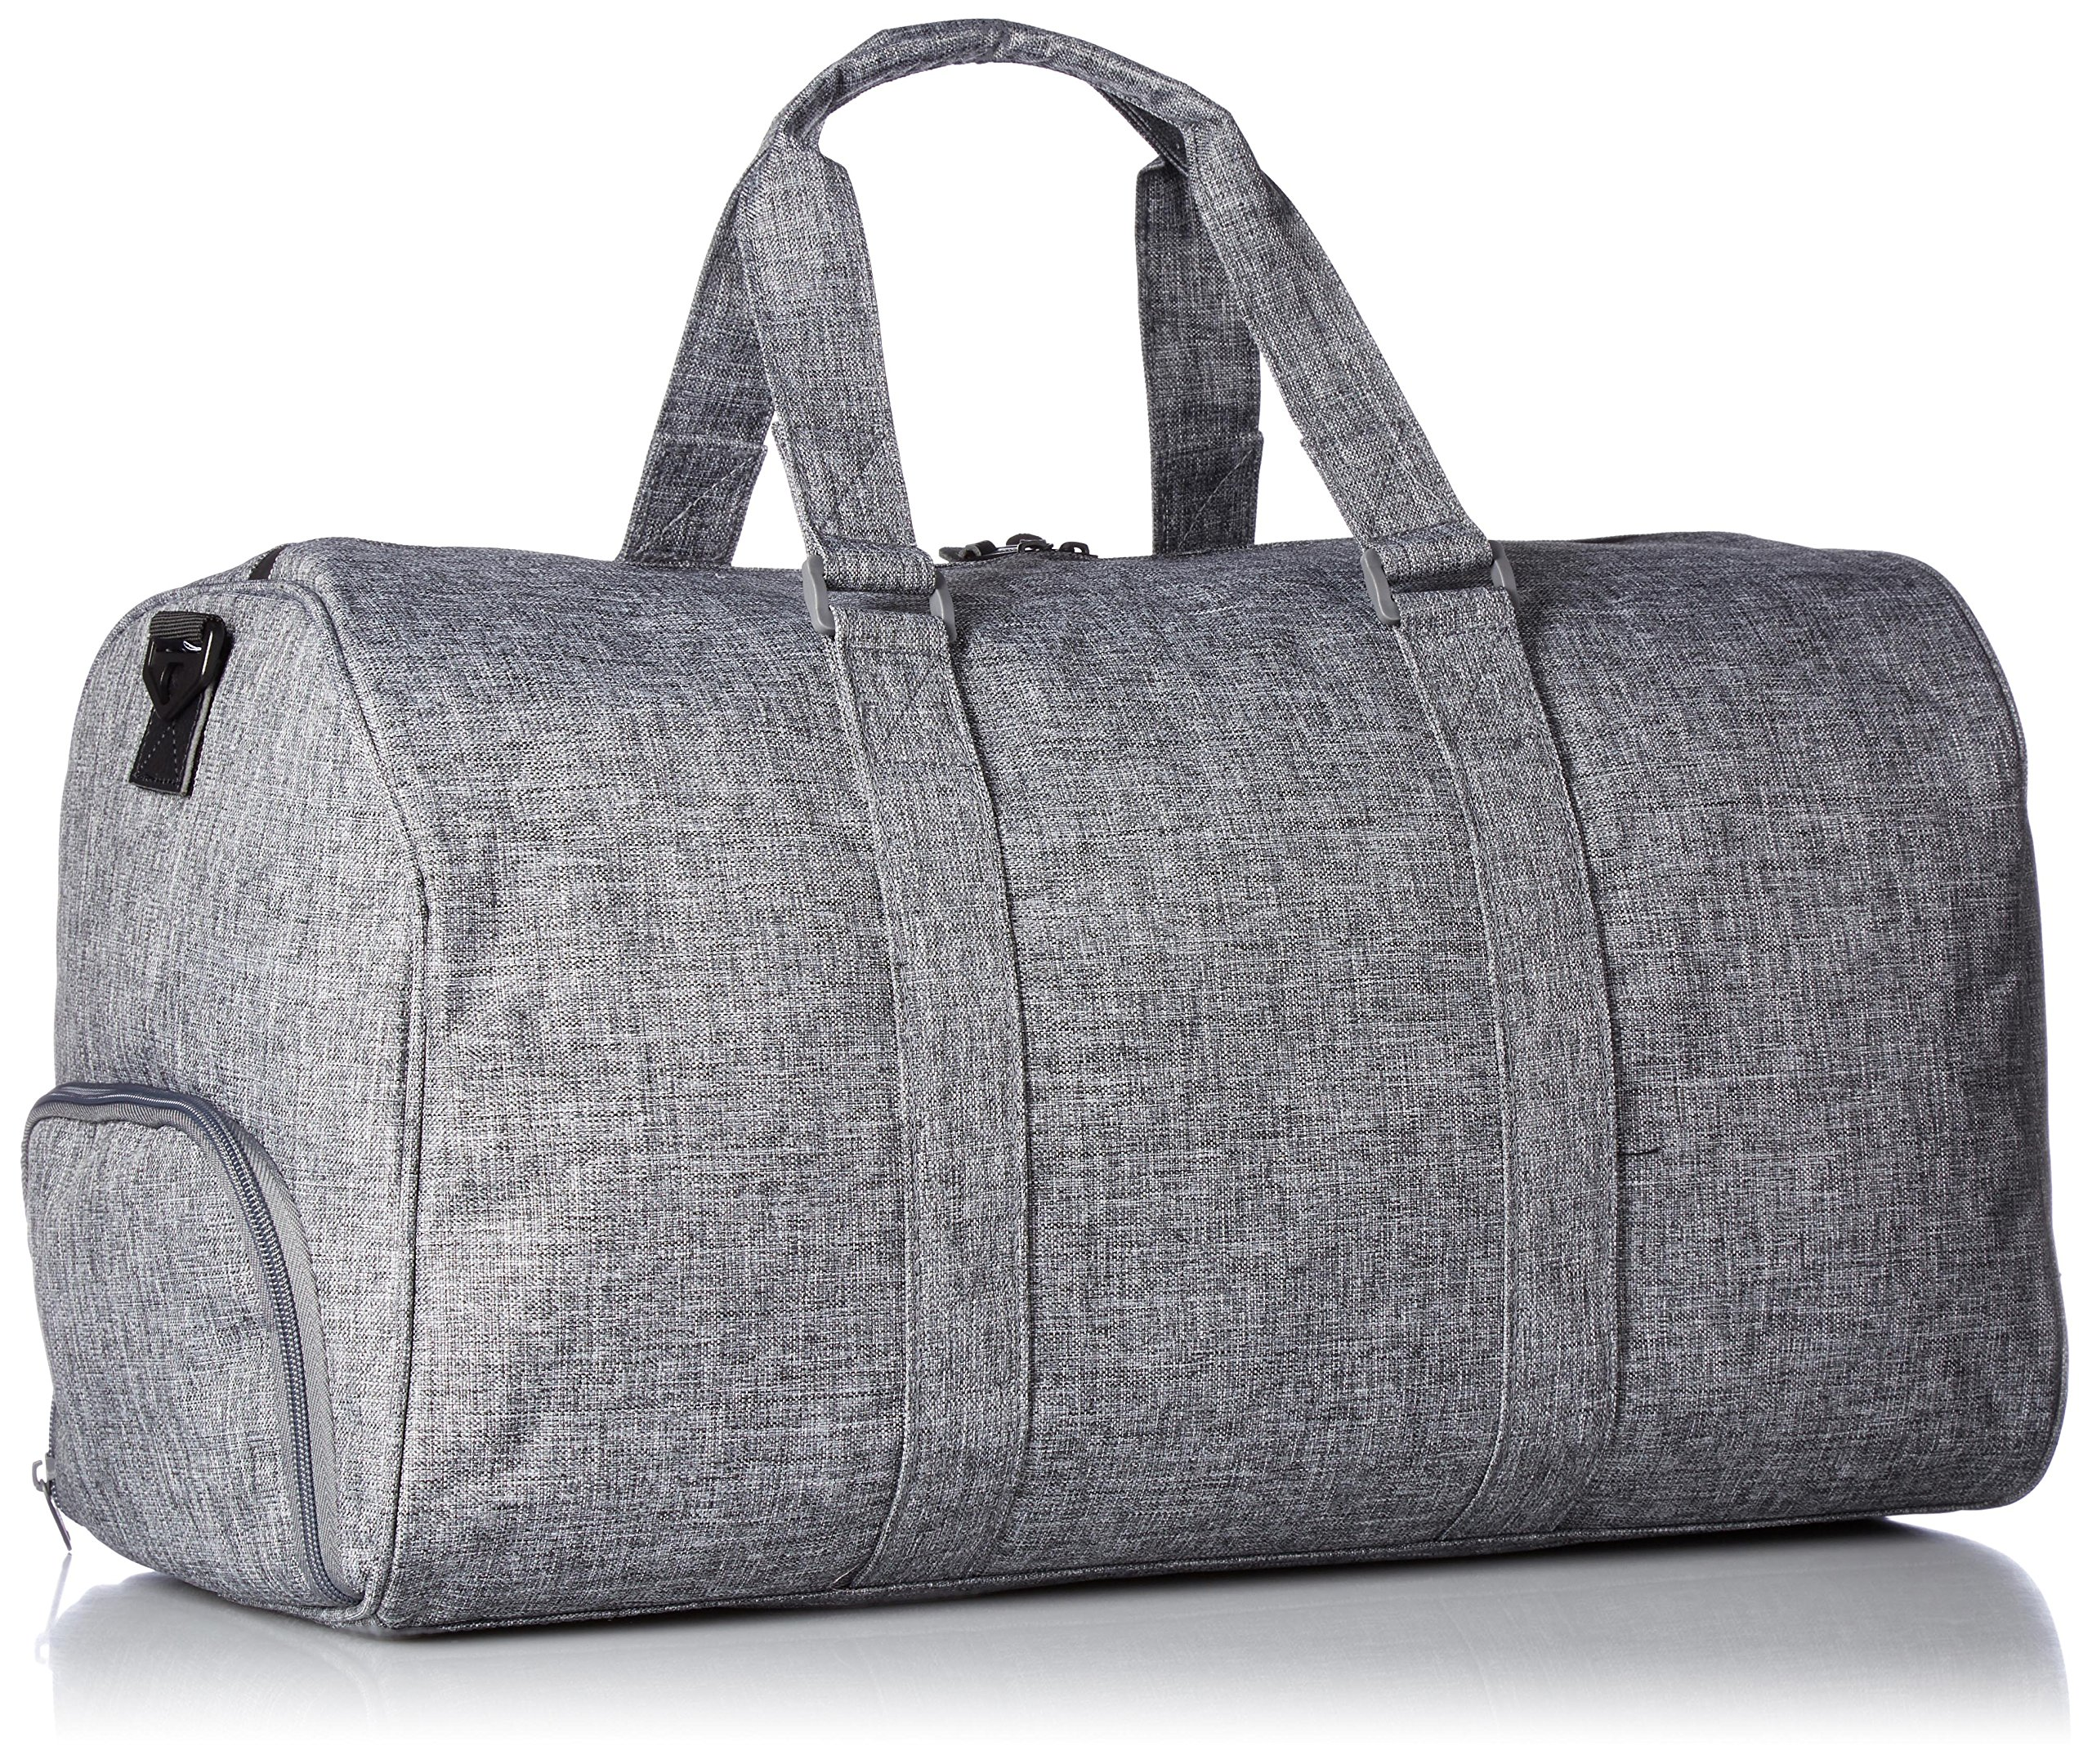 Herschel Novel Duffel Bag-Raven Crosshatch - 10026-00919-OS   Travel  Duffels   Clothing 879adb1b67d8f